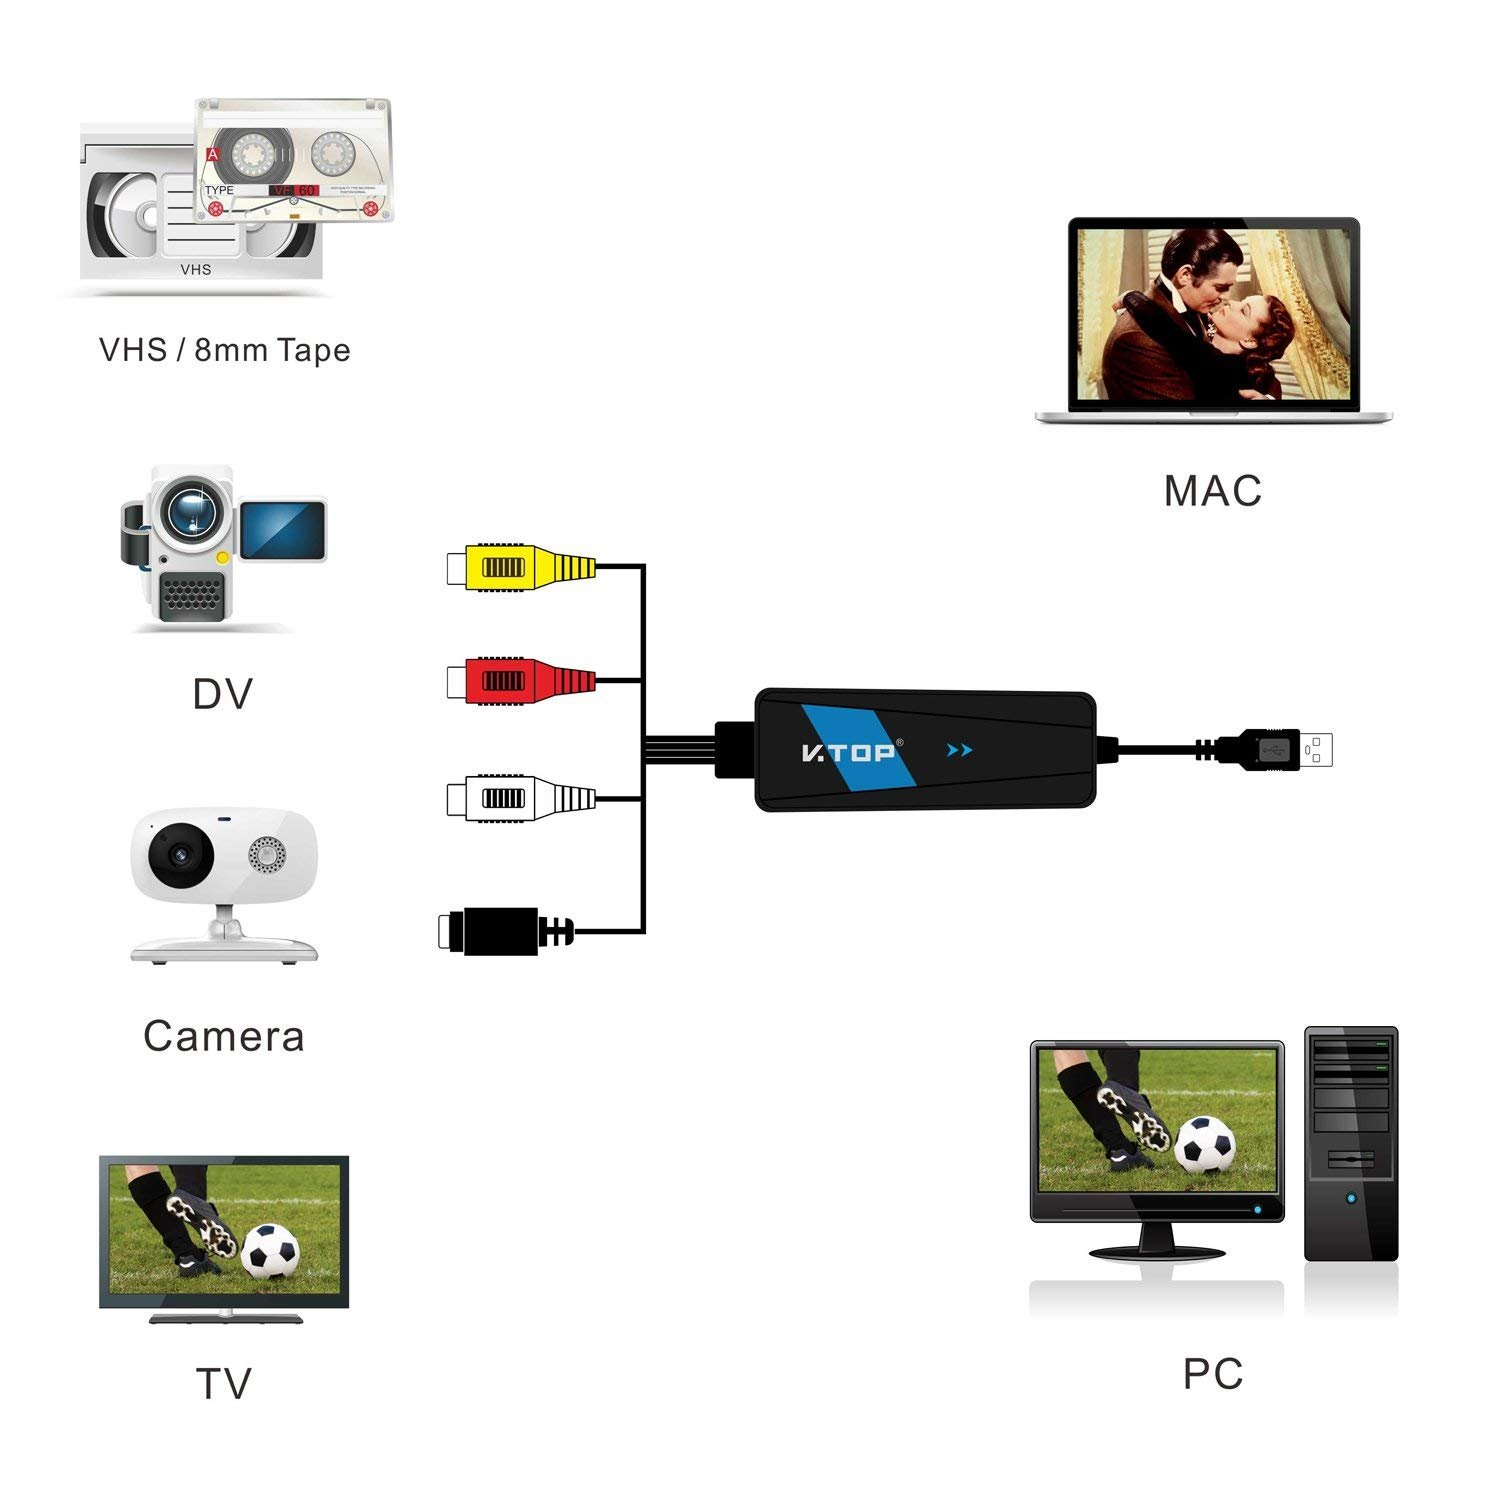 VHS to Digital Converter - USB 2.0 Video Capture Card Device/VHS to DVD Converter - Transfer VHS Tapes to PC,Mac,iMac(Analog to Digital Converter)